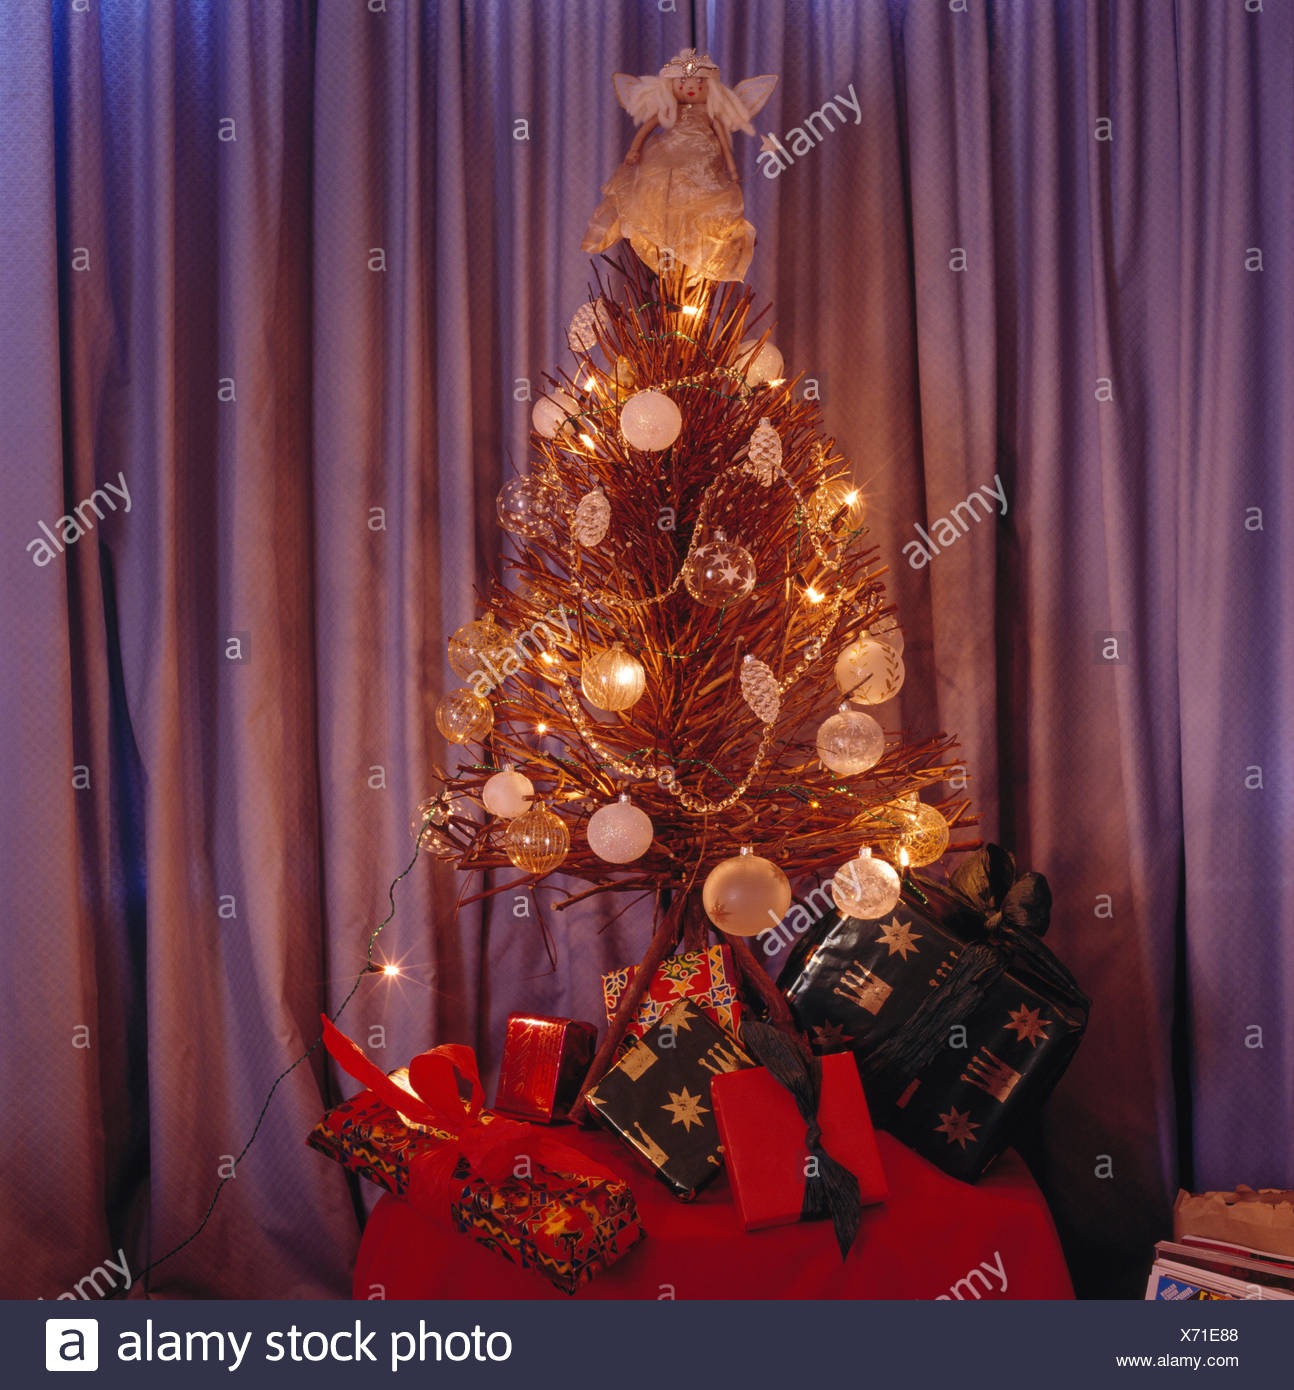 Twig Christmas tree with glass baubles and lights on a table with wrapped presents - Stock Image